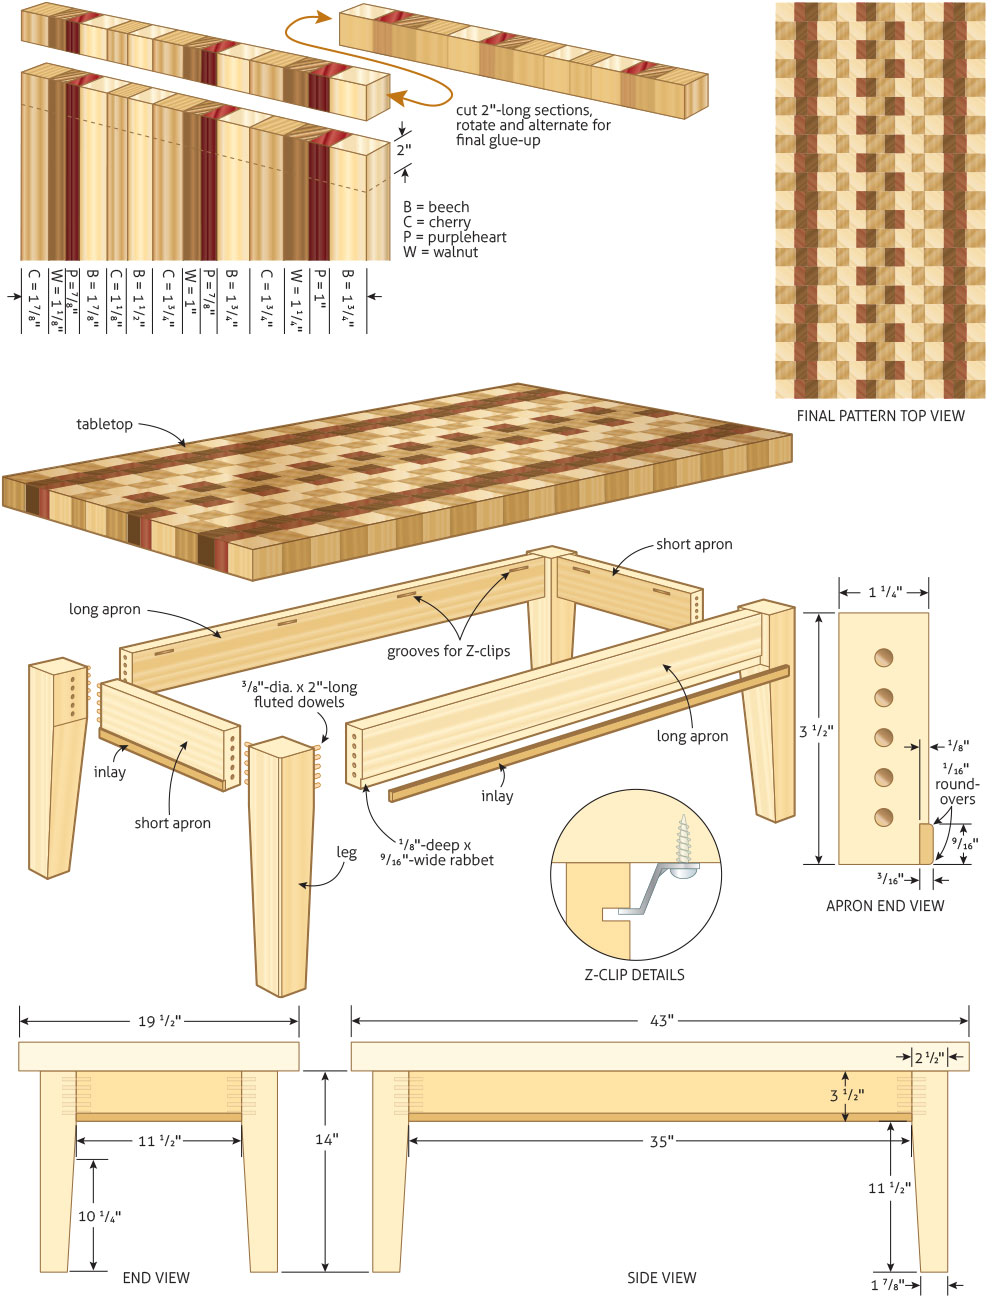 pdf plans plans coffee table download free small wood. Black Bedroom Furniture Sets. Home Design Ideas